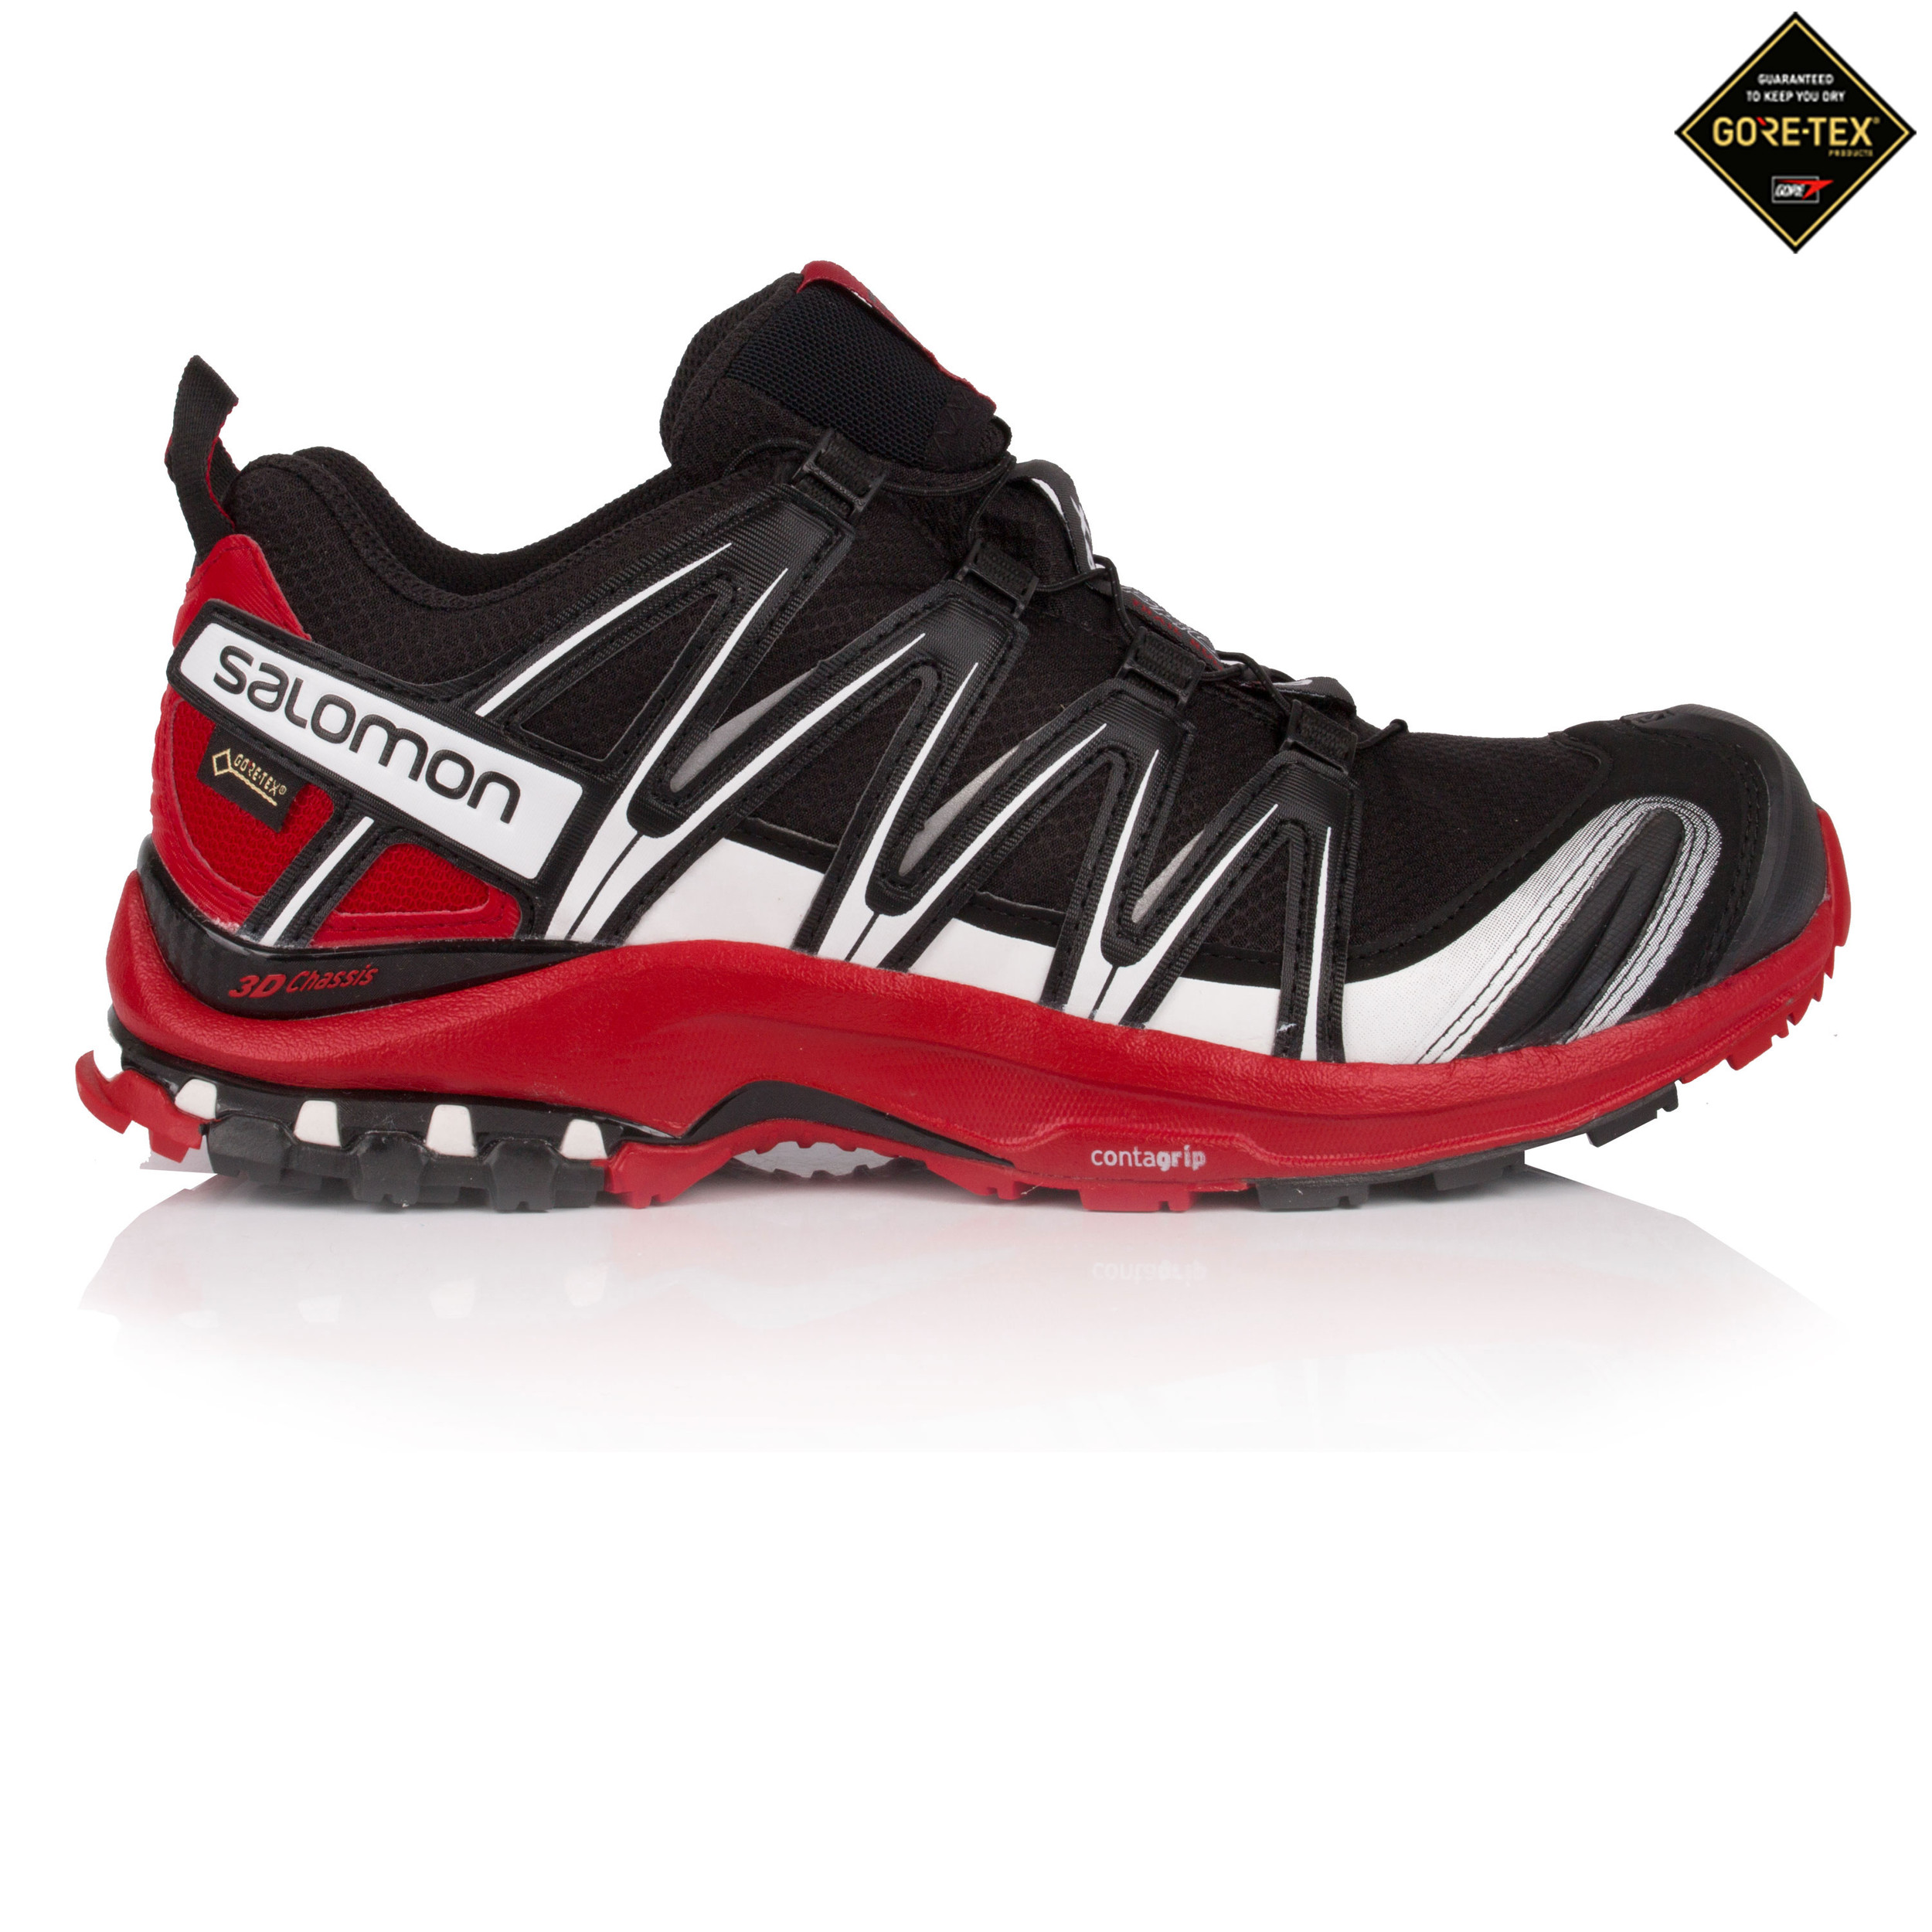 beaaa4dc Details about Salomon Mens XA PRO 3D GTX Trail Running Shoes Trainers  Sneakers Black Sports